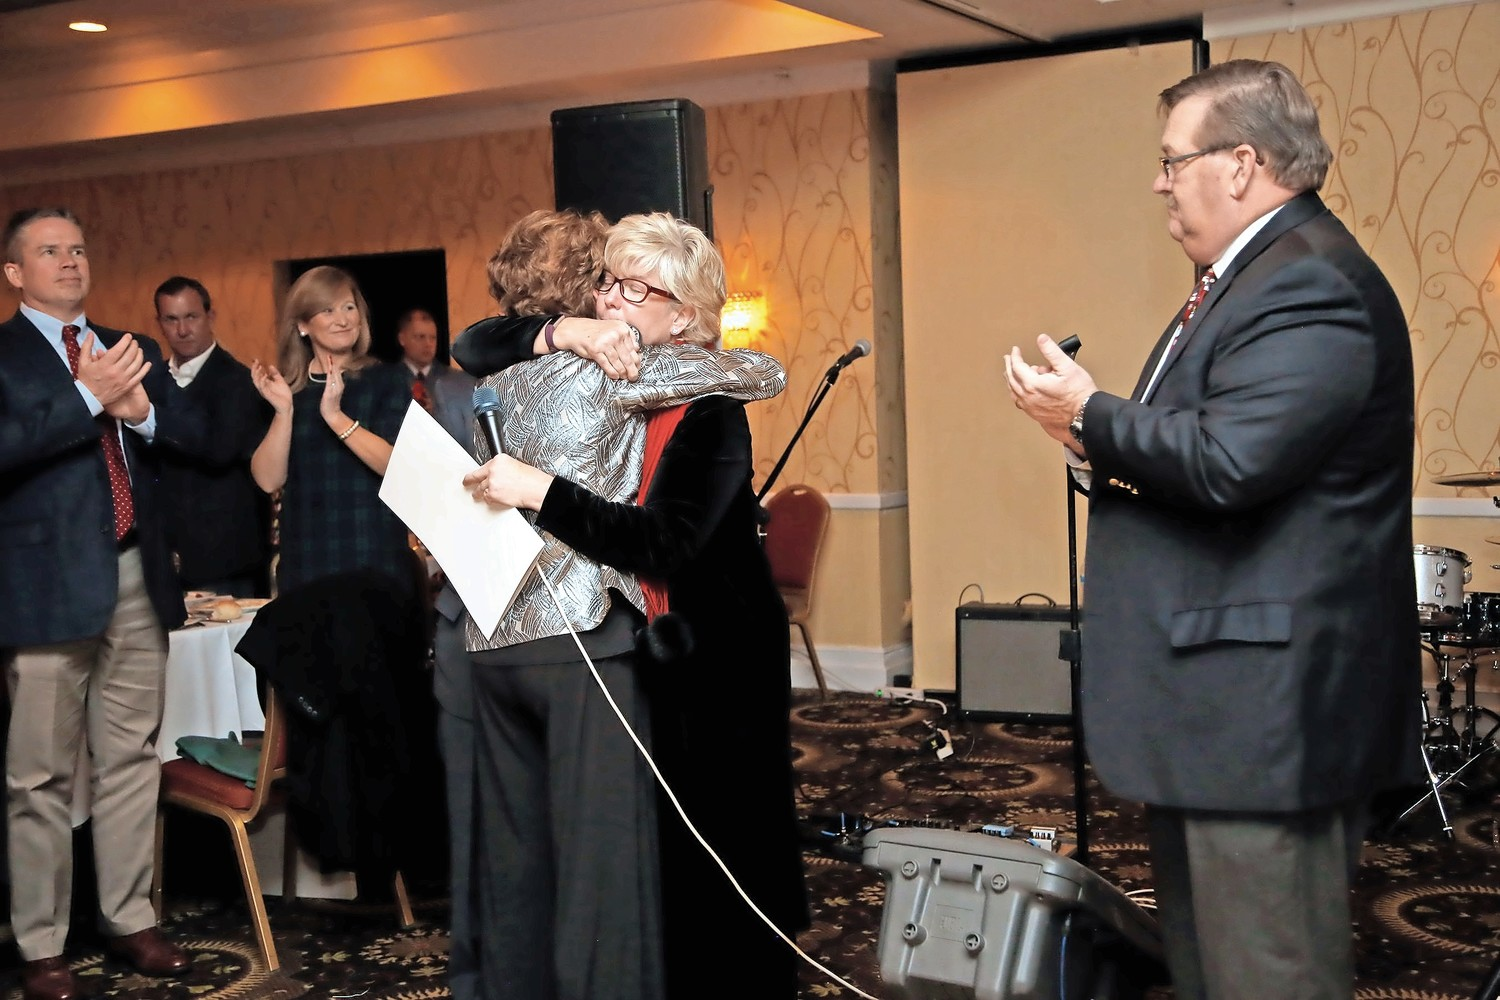 Village Mayor Patti Ann McDonald hugged Maier's wife, Maura Maier, at O.L.L.'s annual holiday gala.